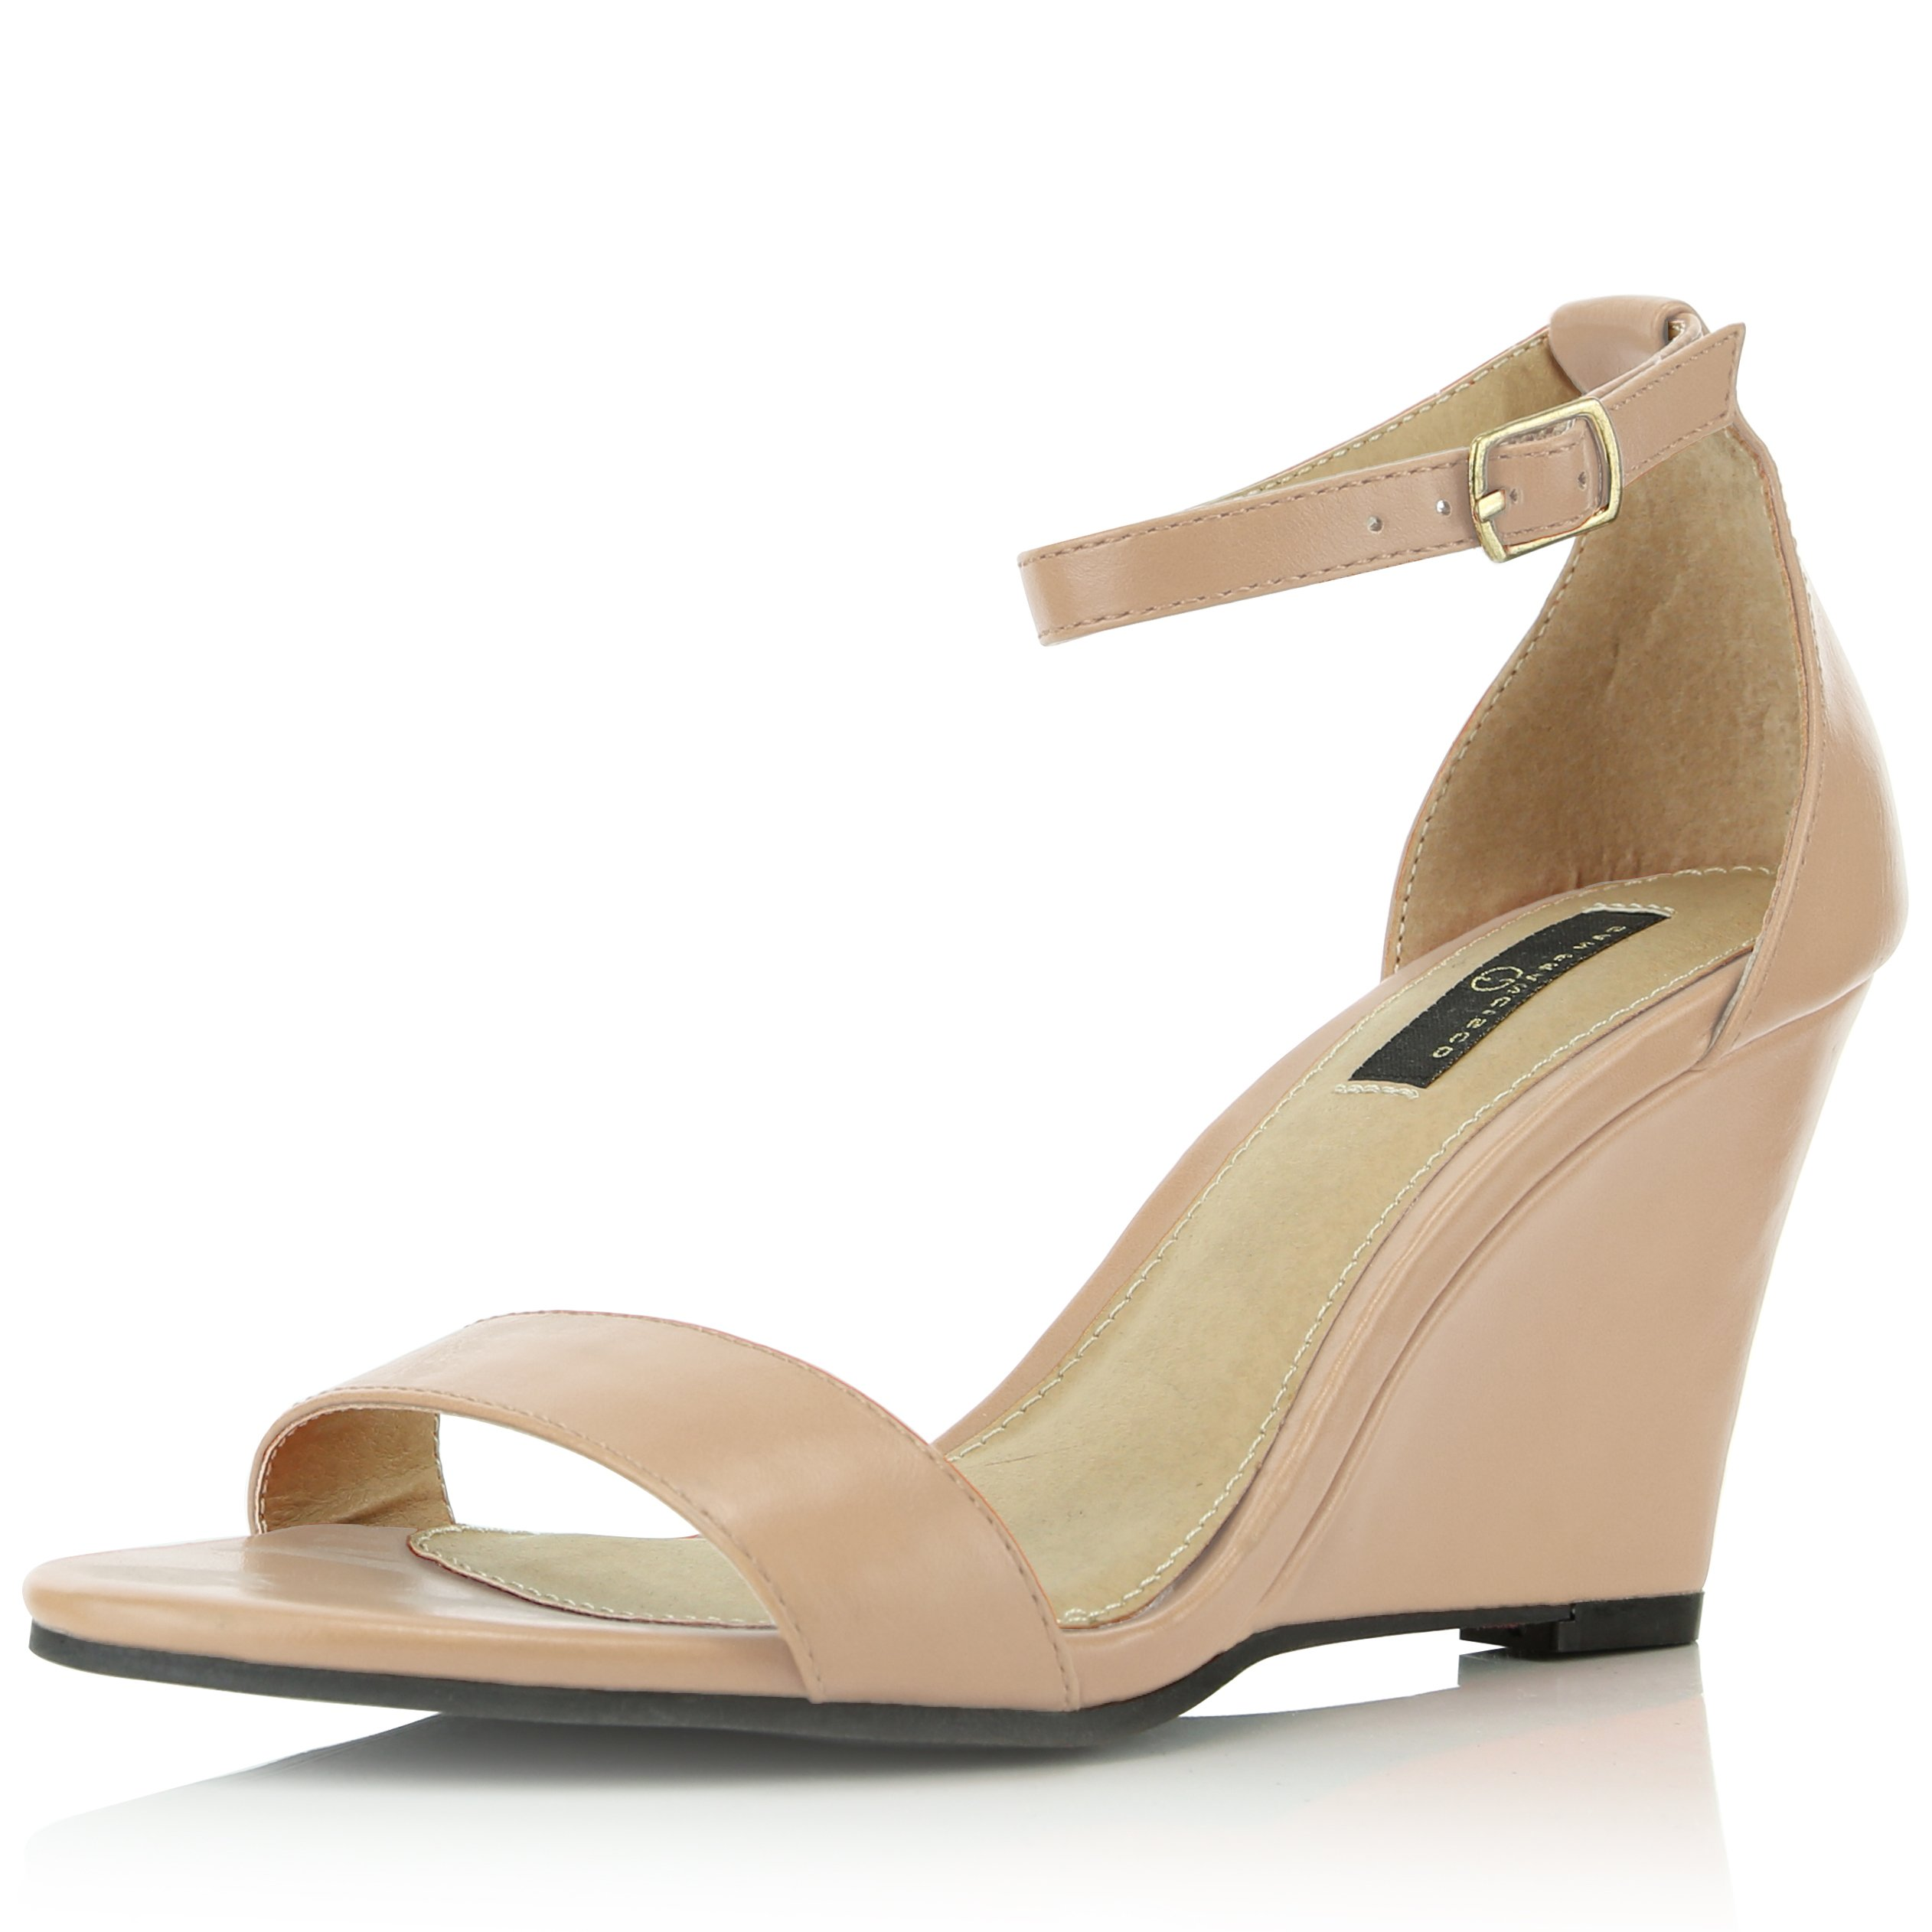 DailyShoes Women's Ankle Open Toe Wedge Fashion Shoes, Beige PU, 10 B(M) US